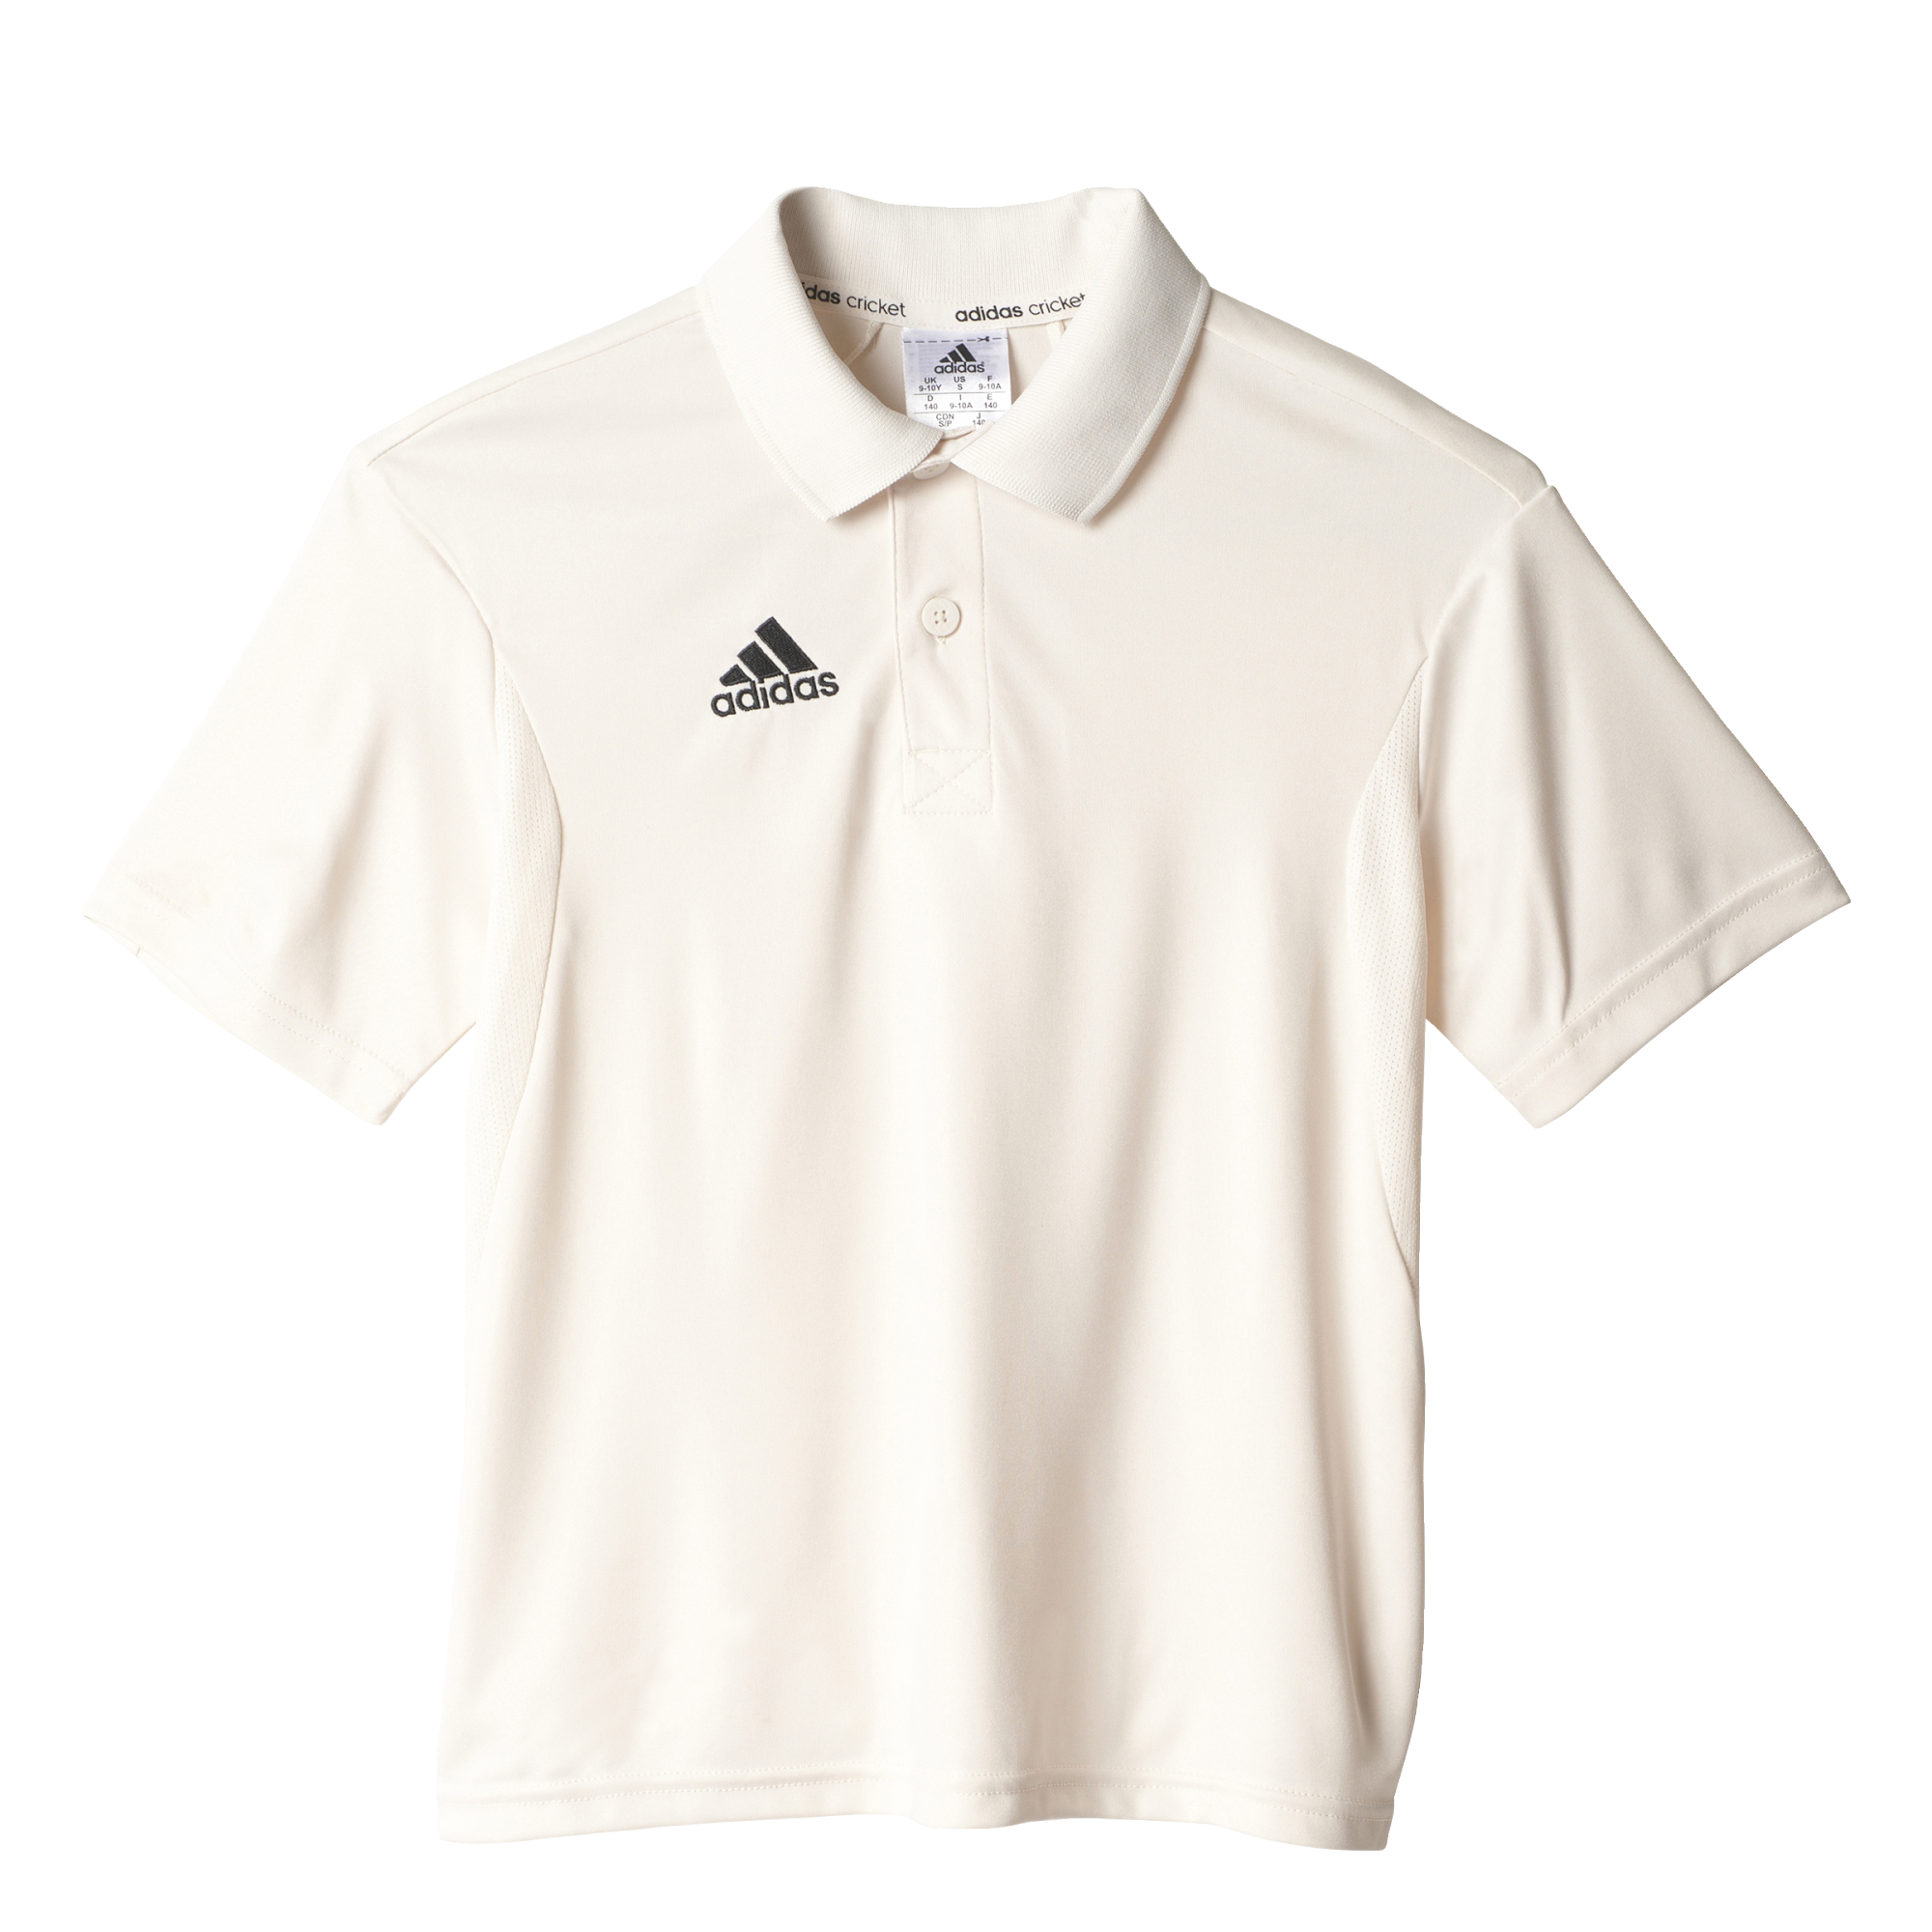 Chappel & Wakes Colne CC Adidas Pro S/S Playing Shirt